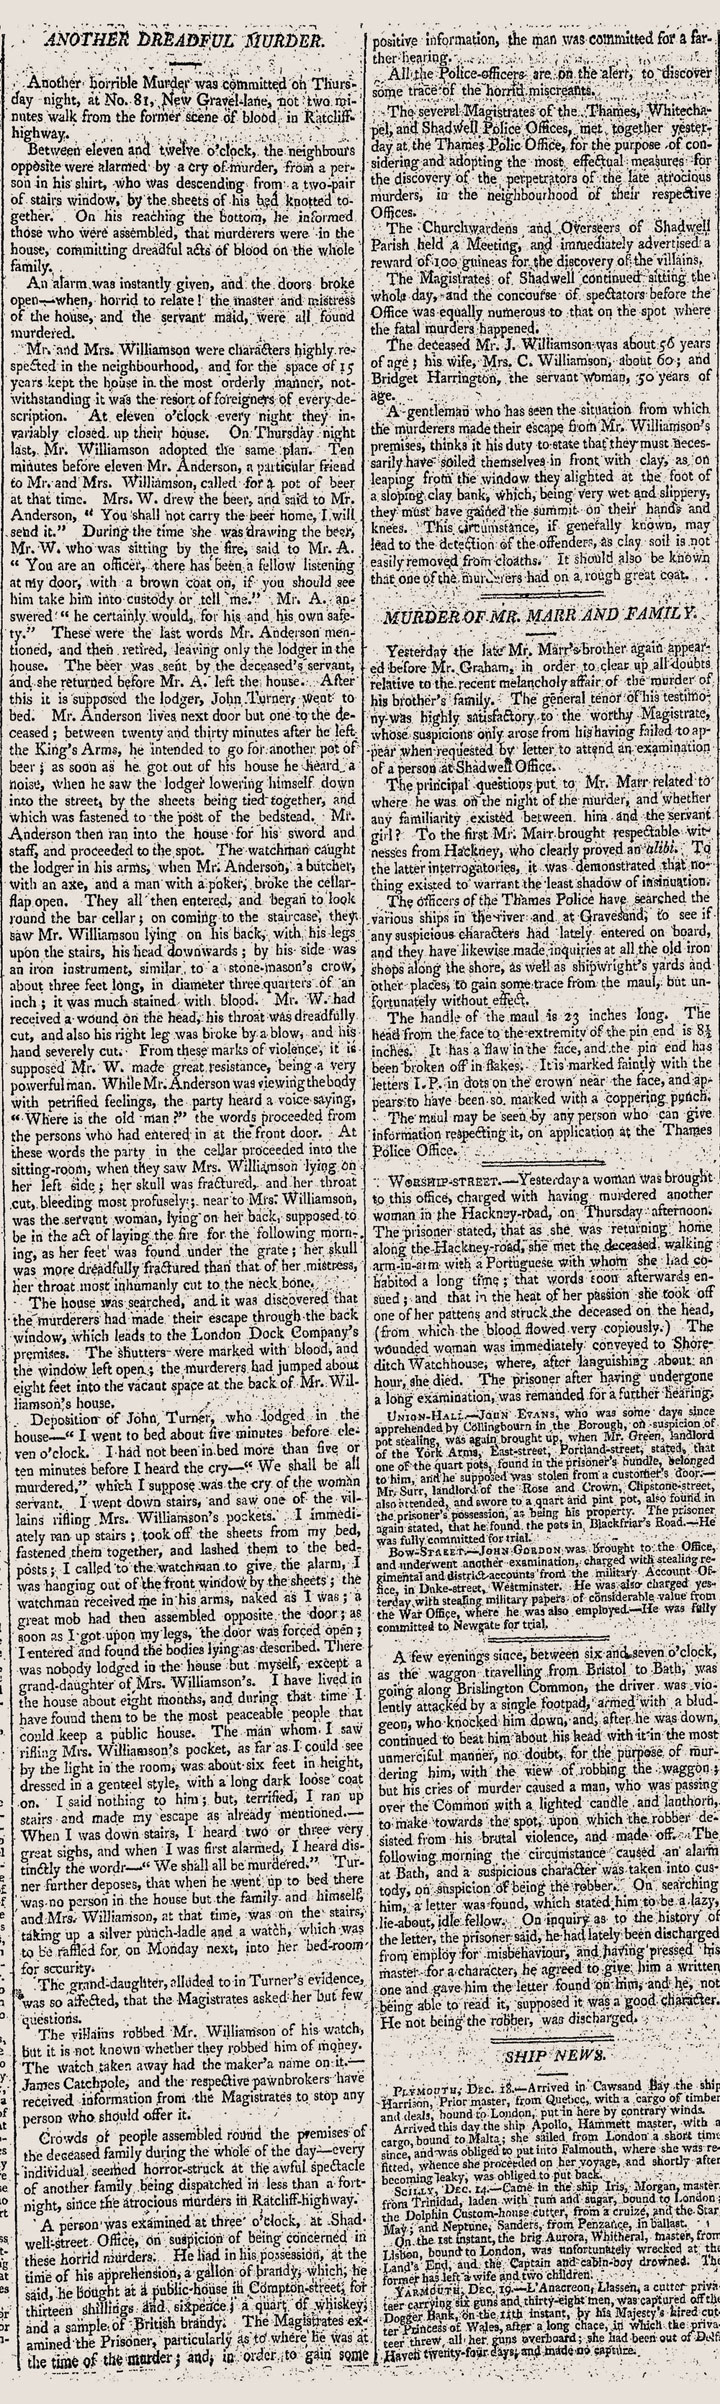 Newspaper Article: 'Another Dreadful Murder', 1811